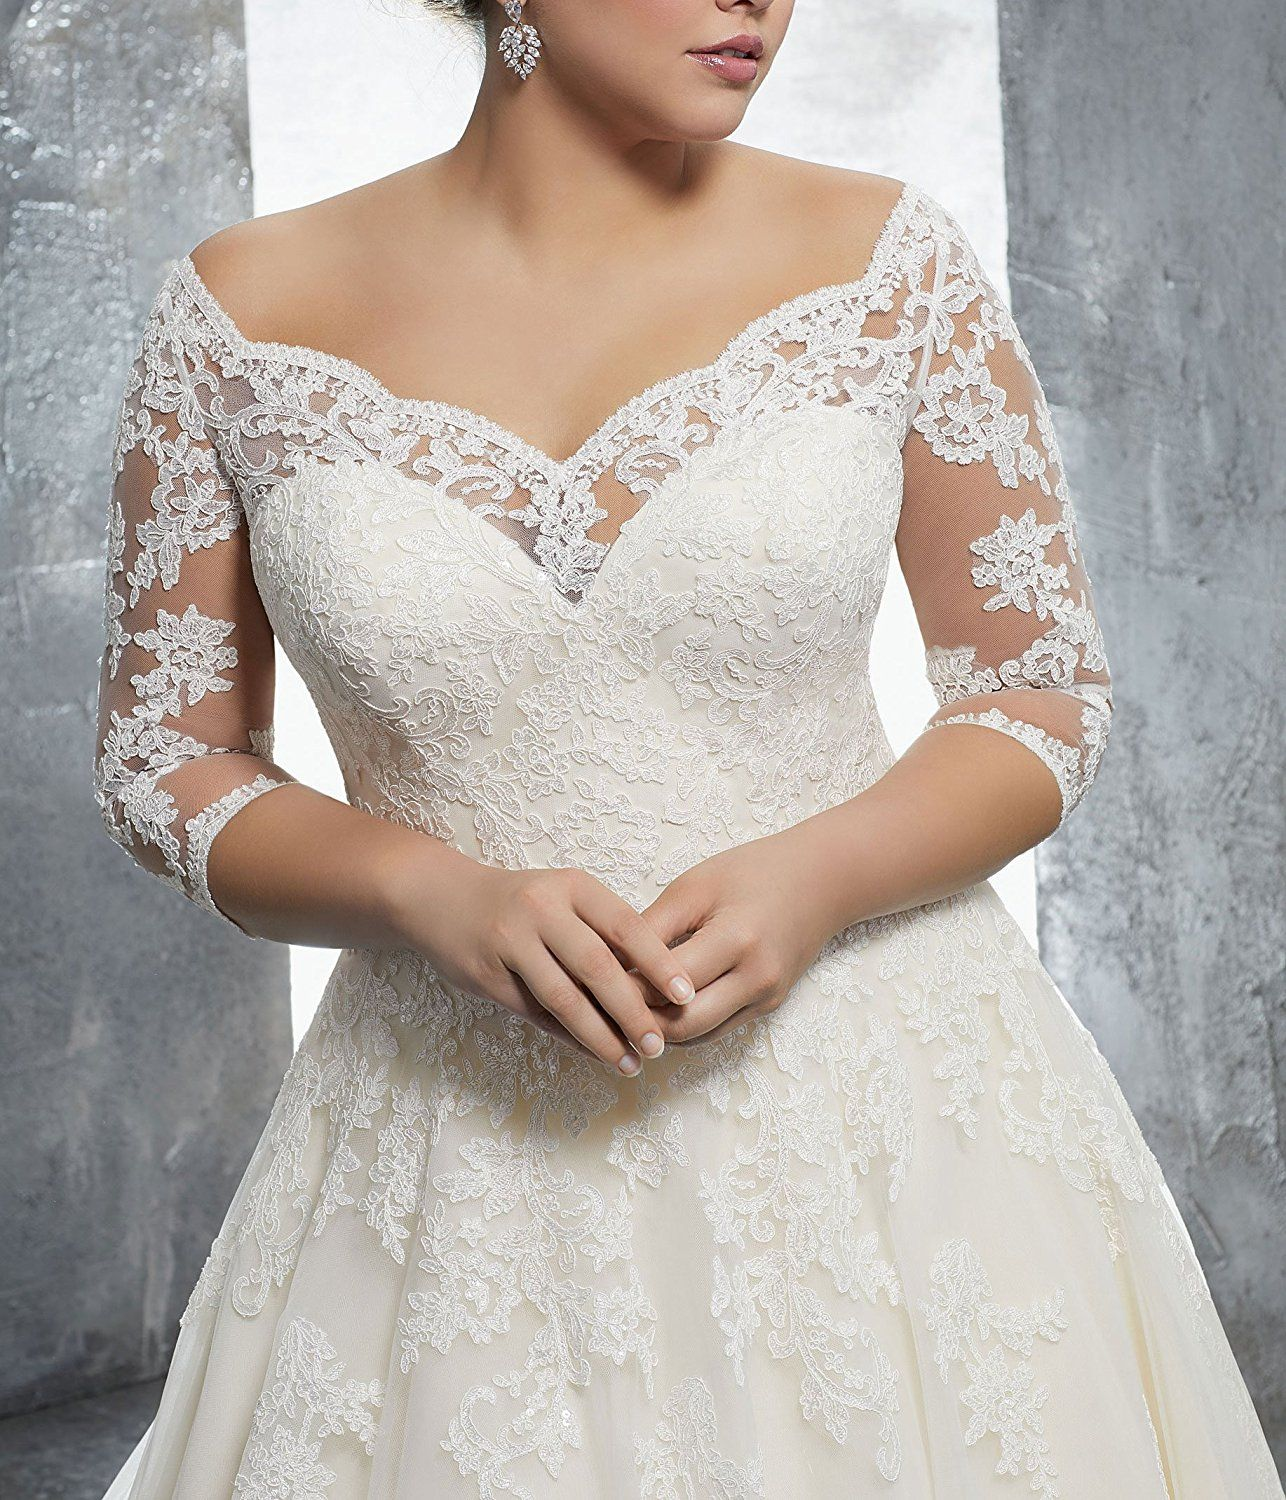 Wulidress Women S Plus Size Bridal Ball Gowns Lace Wedding Dresses With 3 4 Sleeves Ivory Bridal Ball Gown Long Sleeve Wedding Dress Lace Wedding Dresses Lace [ 1500 x 1286 Pixel ]